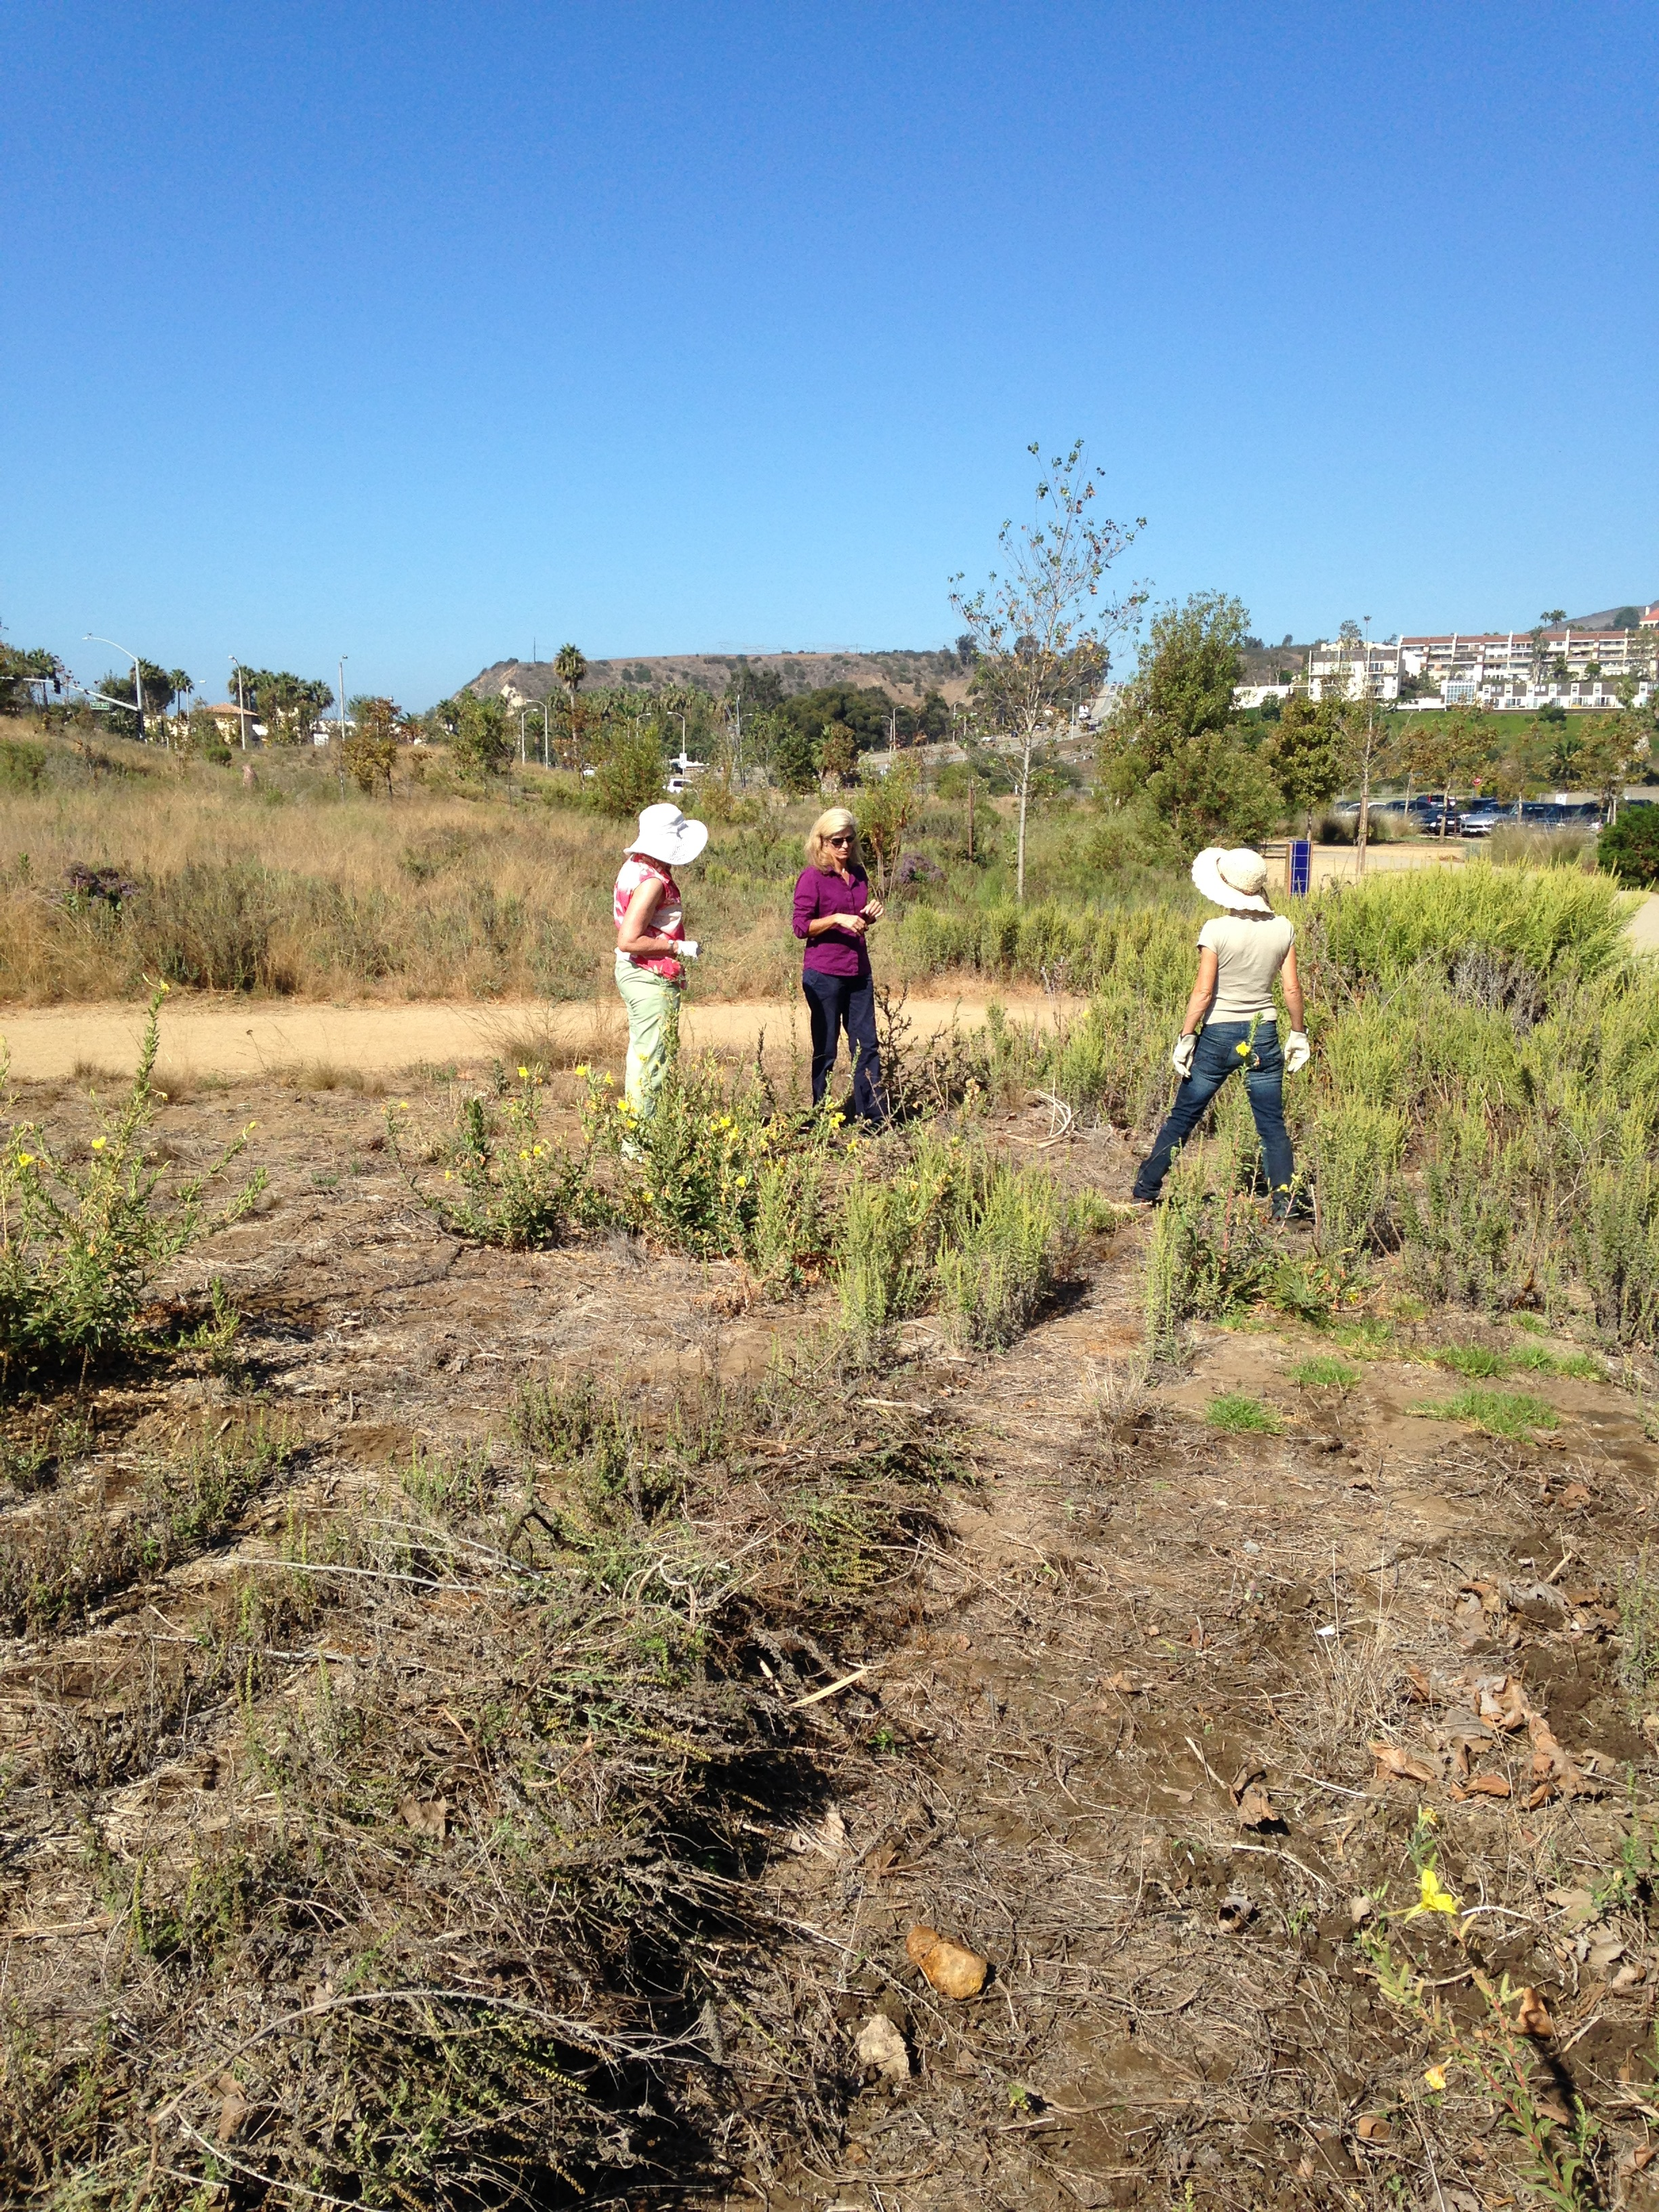 Volunteers Prepared The Area Allocated To The Butterfly Garden By Malibu  City And Planted Milkweed And Other Butterfly Friendly Plants.